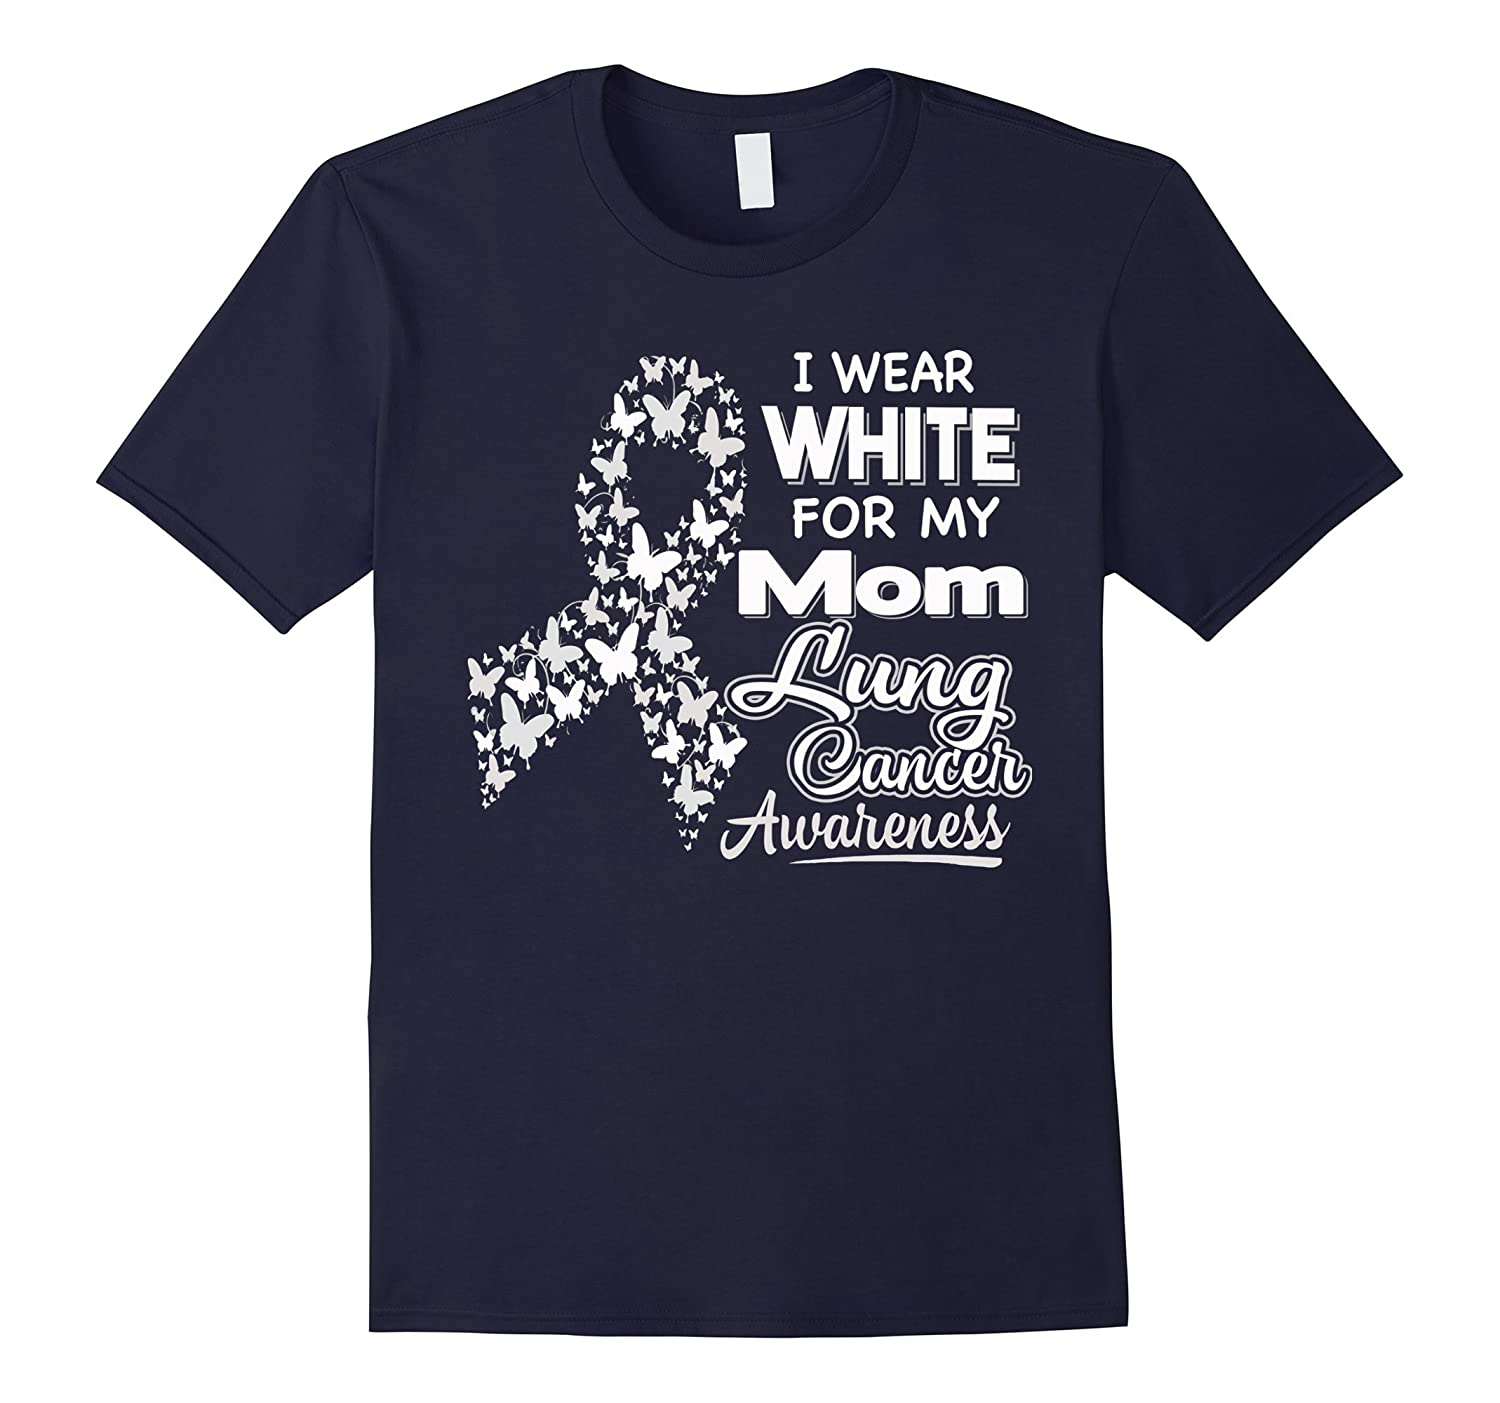 Lung Cancer Awareness T Shirt - I Wear White For My Mom-TH